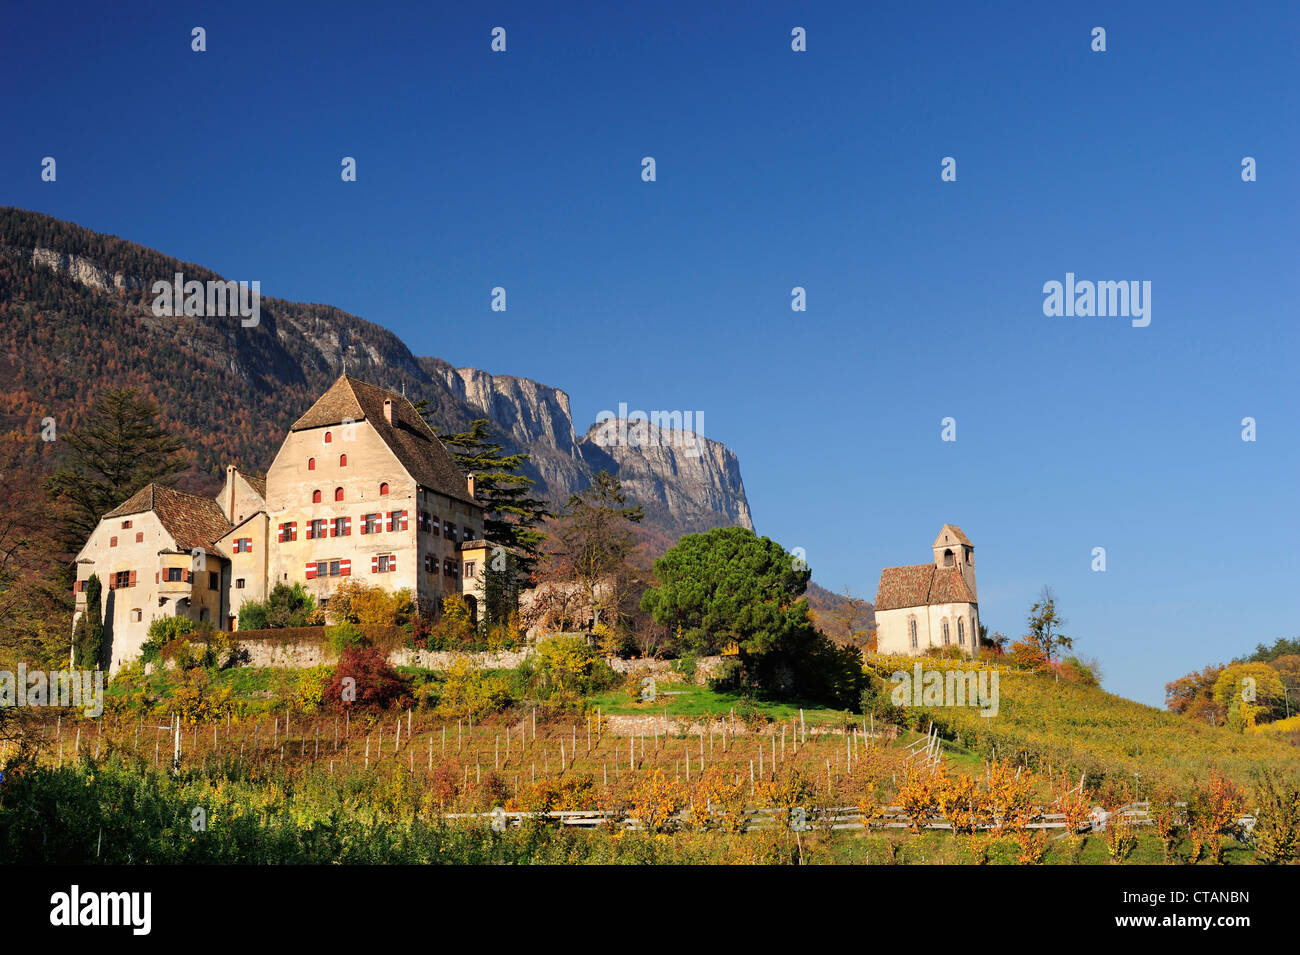 Manor house and church in vineyards in autumn colours with rockface in background, near lake Kalterer See, South - Stock Image